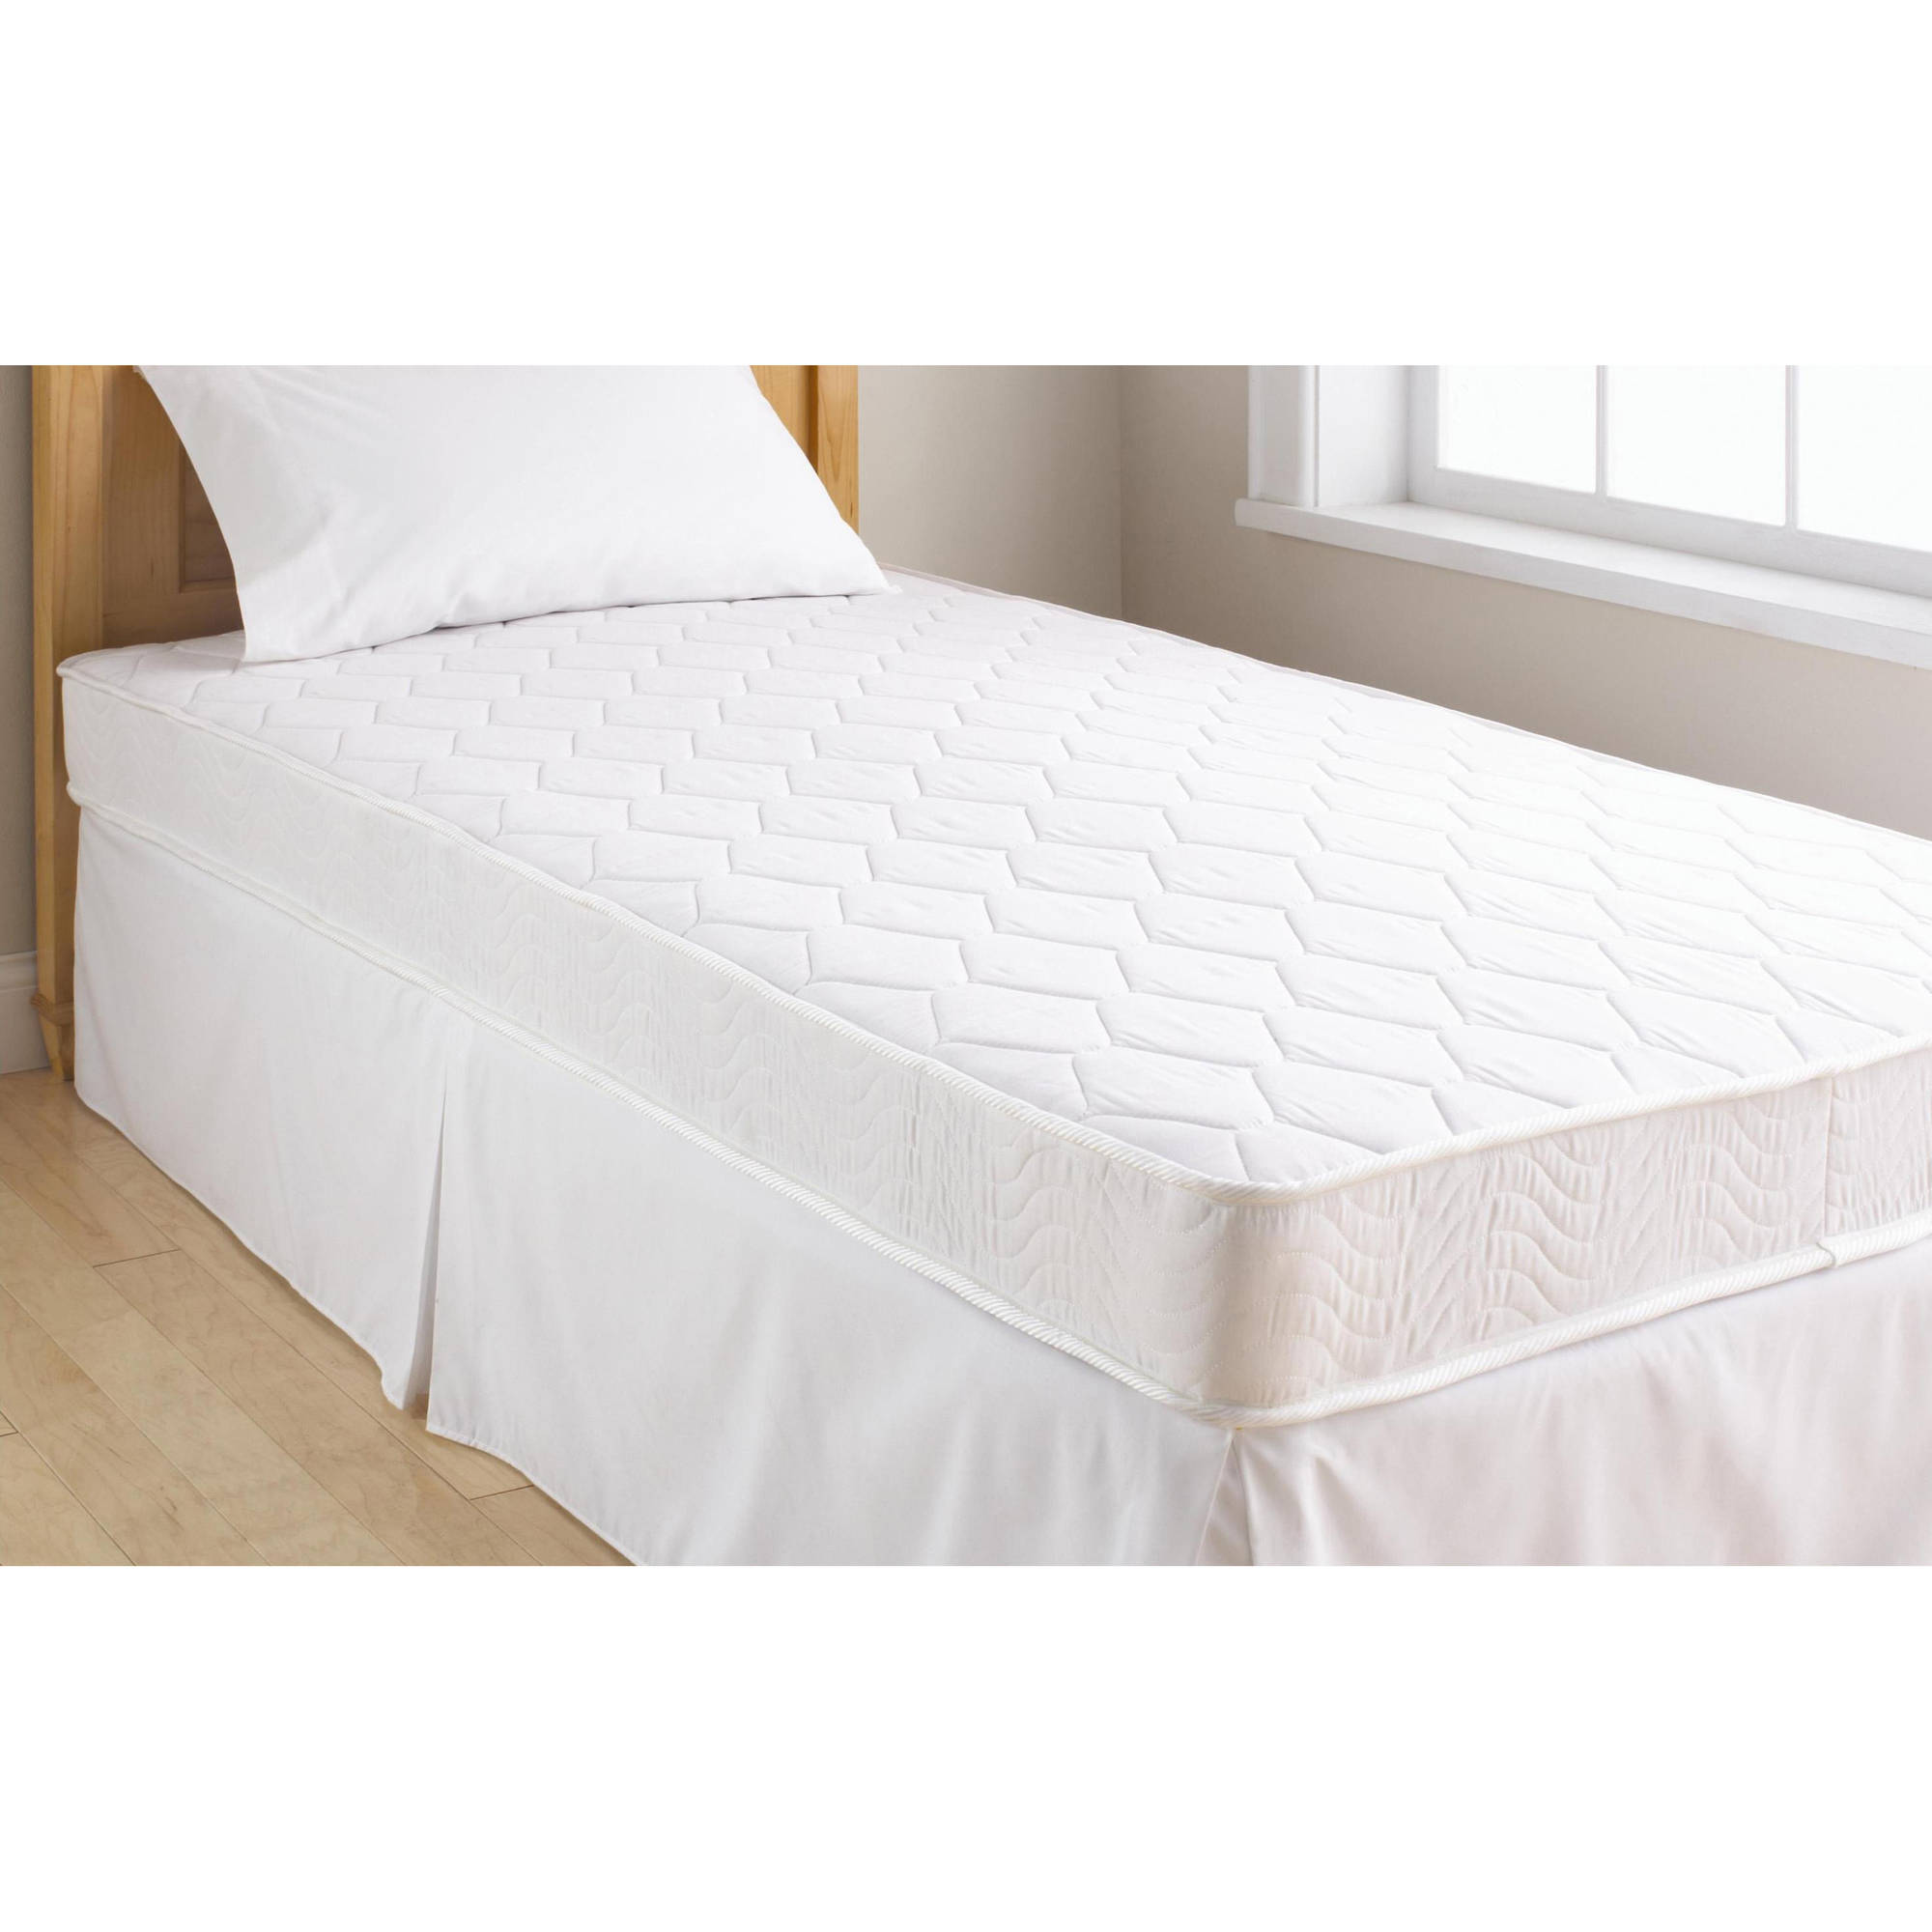 Mainstays 6 Coil Mattress Twin Size And Your Choice Of